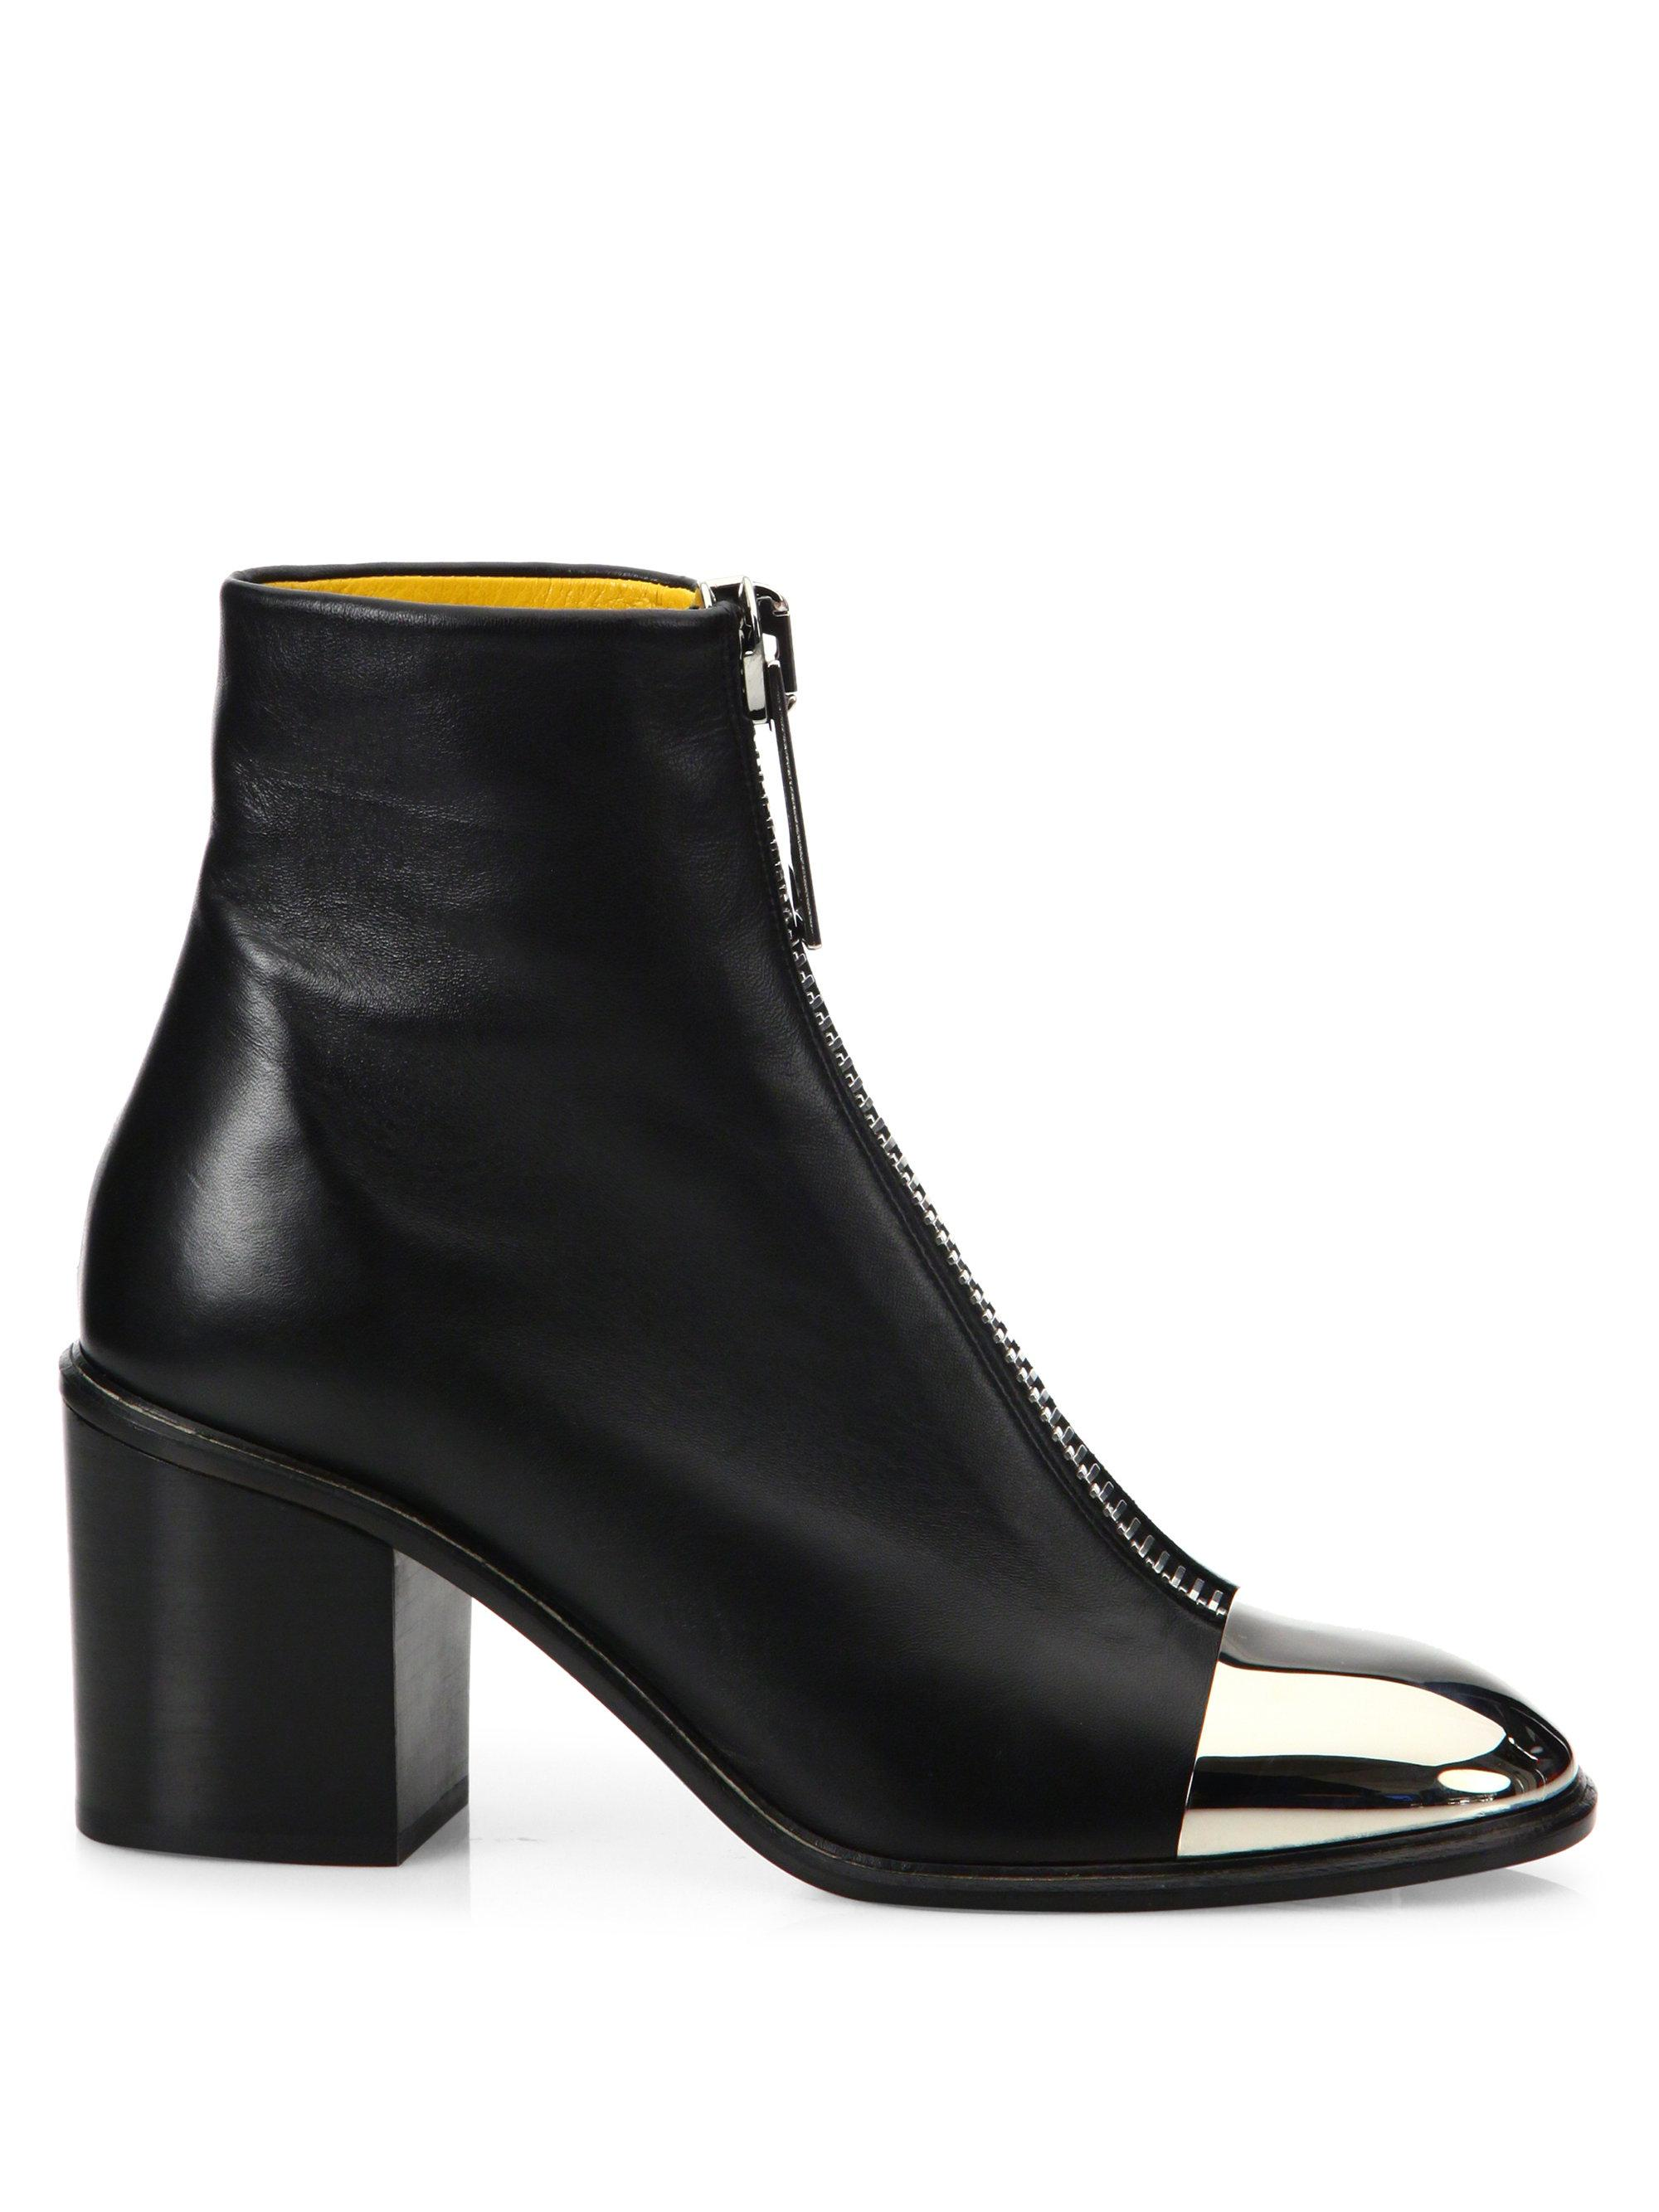 Proenza Schouler Leather Pointed-Toe Ankle Boots great deals cheap price 8Pxcw0